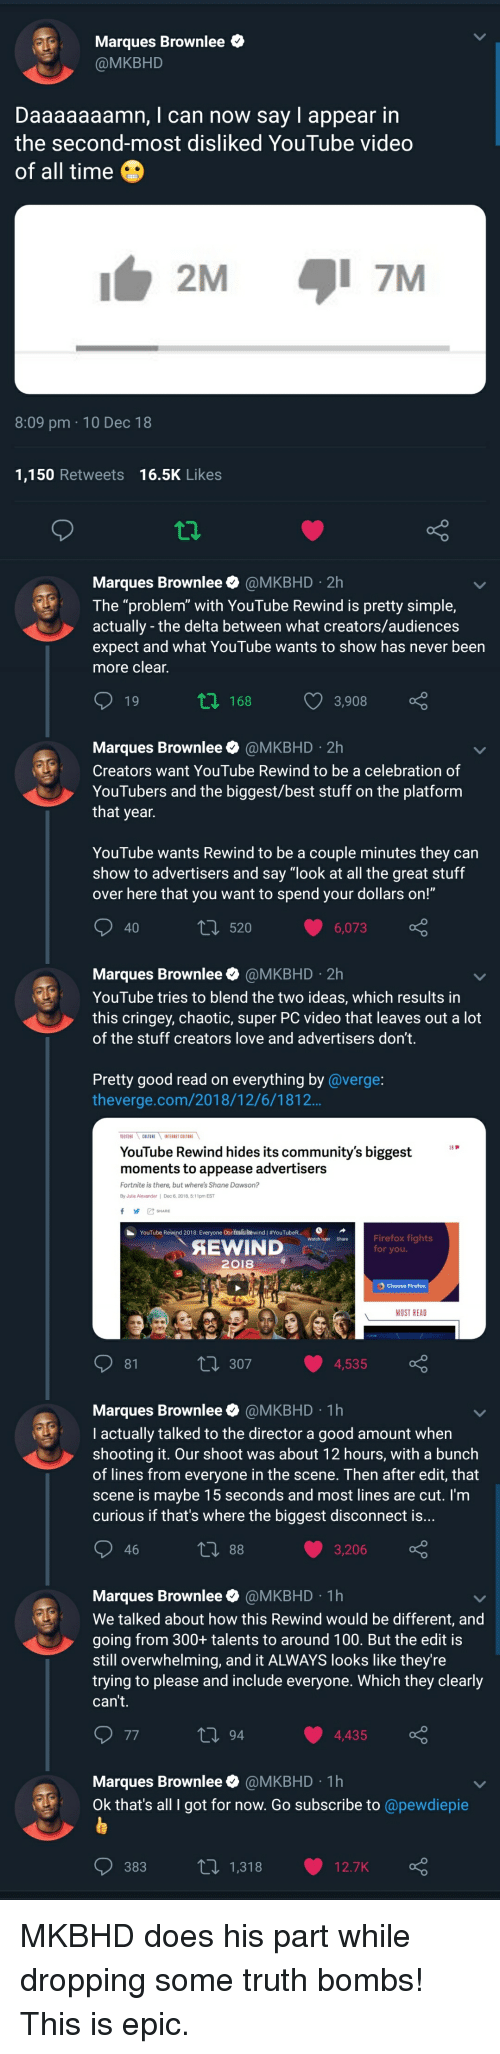 """Daaaaaaamn: Marques Brownlee e  @MKBHD  Daaaaaaamn, I can now say I appear in  the second-most disliked YouTube video  of all time  2M7M  8:09 pm 10 Dec 18  1,150 Retweets 16.5K Likes  Marques Brownlee @MKBHD 2h  The """"problem"""" with YouTube Rewind is pretty simple,  actually - the delta between what creators/audiences  expect and what YouTube wants to show has never been  more clear  19  t 168 3,908  Marques Brownlee @MKBHD 2h  Creators want YouTube Rewind to be a celebration of  YouTubers and the biggest/best stuff on the platform  that year  YouTube wants Rewind to be a couple minutes they can  show to advertisers and say """"look at all the great stuff  over here that you want to spend your dollars on!""""  40  ti 520 6,073  Marques Brownlee @MKBHD 2h  YouTube tries to blend the two ideas, which results in  this cringey, chaotic, super PC video that leaves out a lot  of the stuff creators love and advertisers don't.  Pretty good read on everything by @verge  theverge.com/2018/12/6/1812  YouTube Rewind hides its community's biggest*  moments to appease advertisers  Fortnite is there, but where's Shane Dawson?  for you.  2018  MOST READ  81  ti 307 4,535  Marques Brownlee @MKBHD 1h  I actually talked to the director a good amount when  shooting it. Our shoot was about 12 hours, with a bunch  of lines from everyone in the scene. Then after edit, that  scene is maybe 15 seconds and most lines are cut. I'm  curious if that's where the biggest disconnect is...  46  3,206  Marques Brownlee @MKBHD 1h  We talked about how this Rewind would be different, and  going from 300+ talents to around 100. But the edit is  still overwhelming, and it ALWAYS looks like they're  trying to please and include everyone. Which they clearly  can't.  4,435  Marques Brownlee @MKBHD 1h  Ok that's all I got for now. Go subscribe to @pewdiepie  383  1,318  12.7K"""